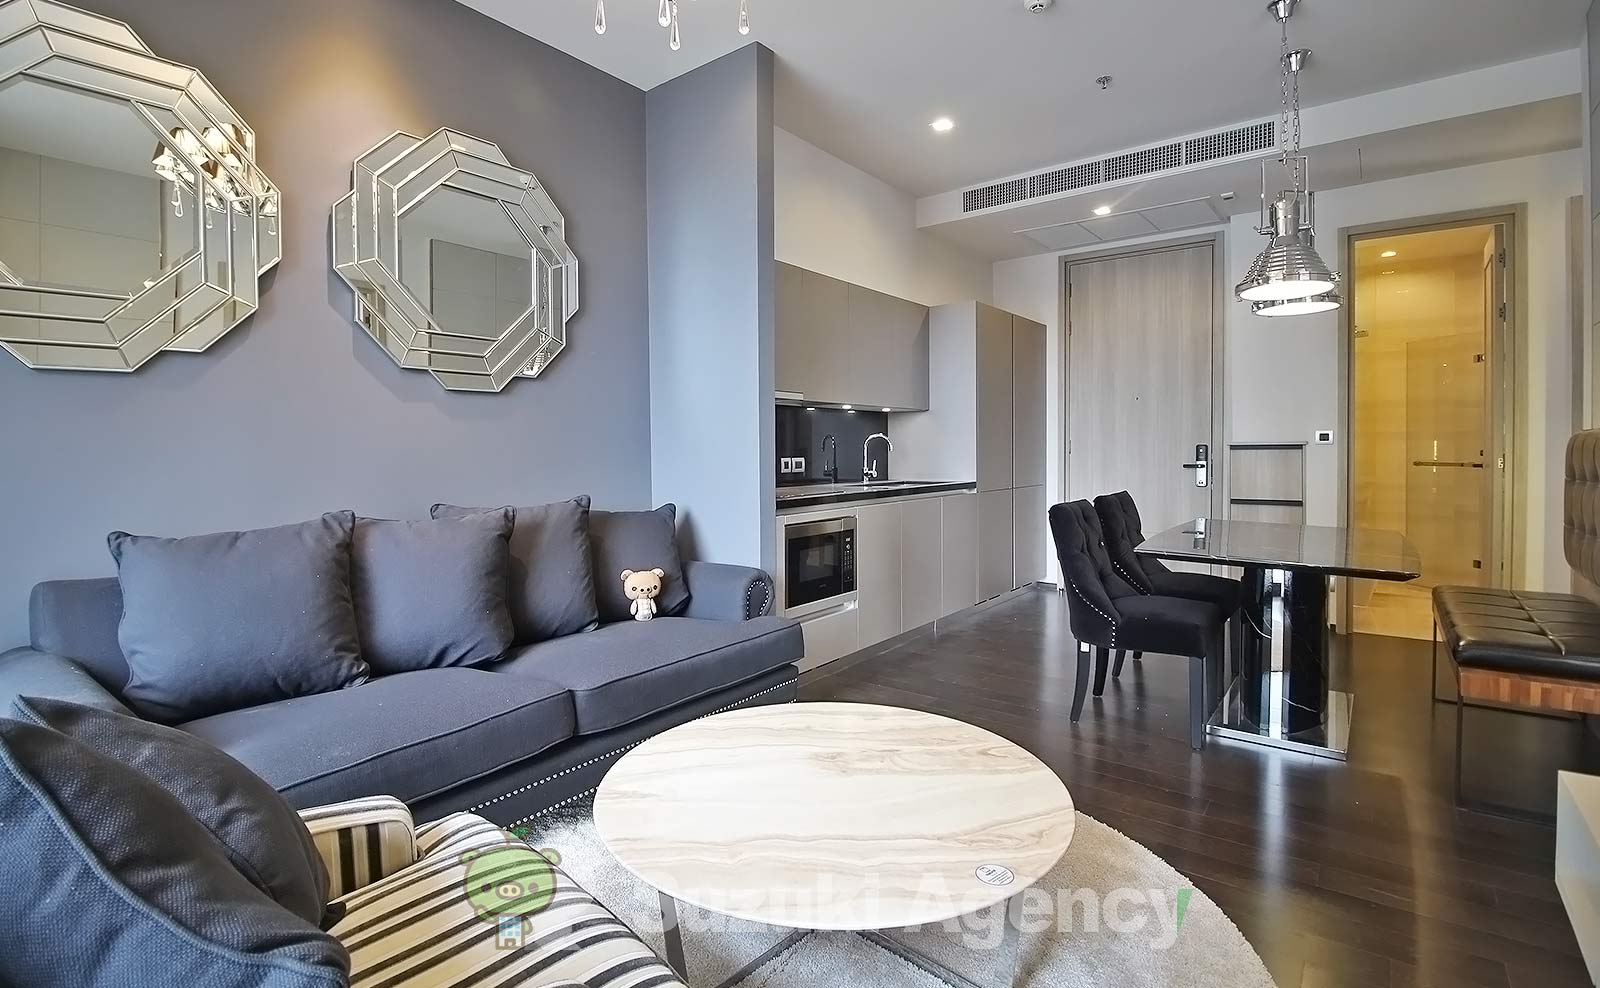 The XXXIX by Sansiri:2Bed Room Photos No.5